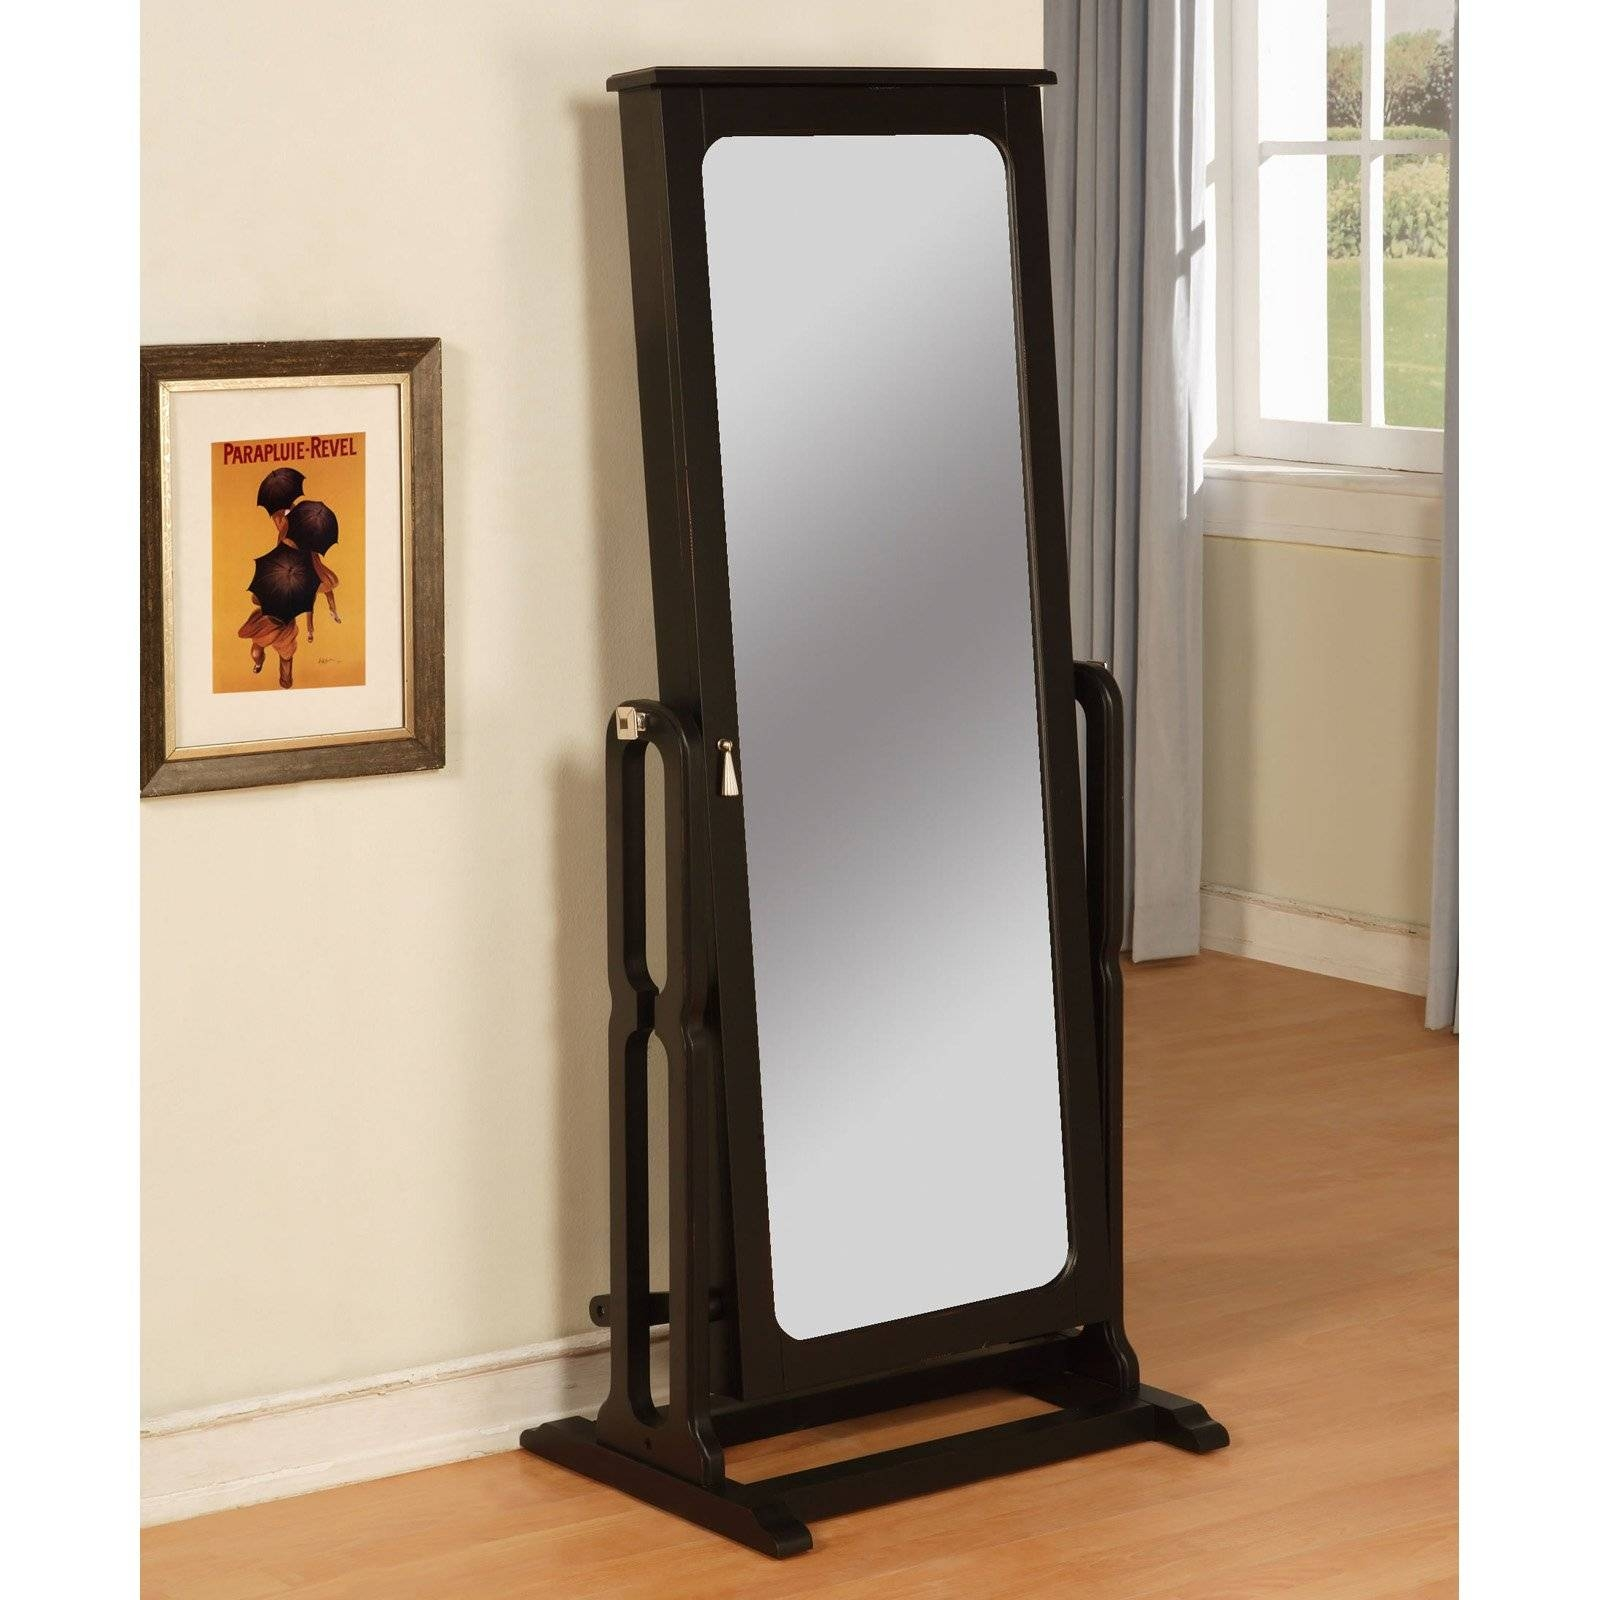 Decorating: Wrought Iron Cheval Mirror With Wooden Floor And Cream in Wrought Iron Full Length Mirrors (Image 6 of 25)